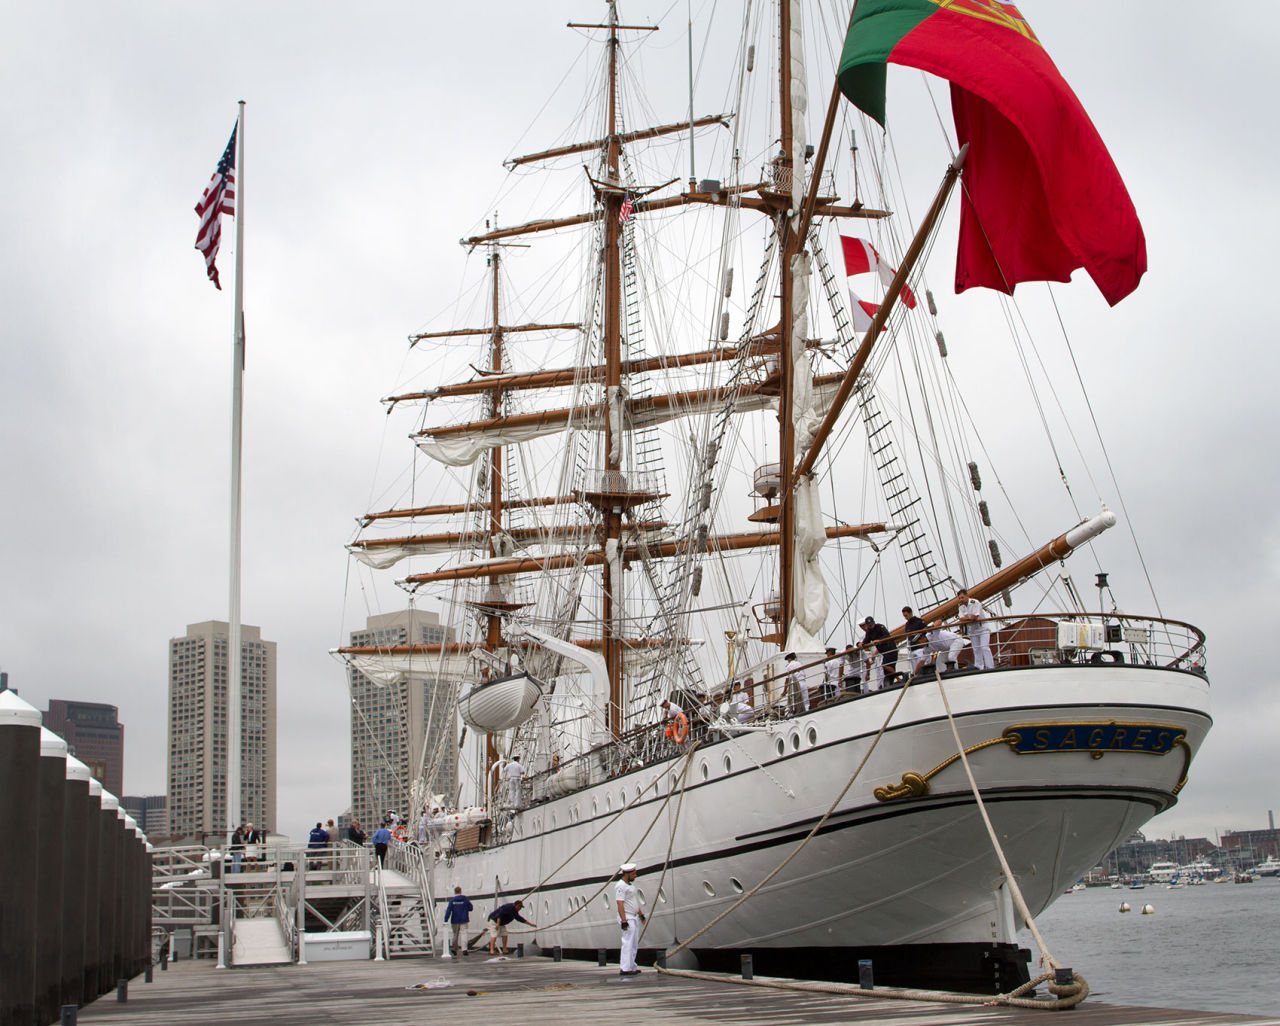 Portugal's Sagres docked at the Fan Pier Marina in Boston in 2015. (Hadley Green for WBUR)